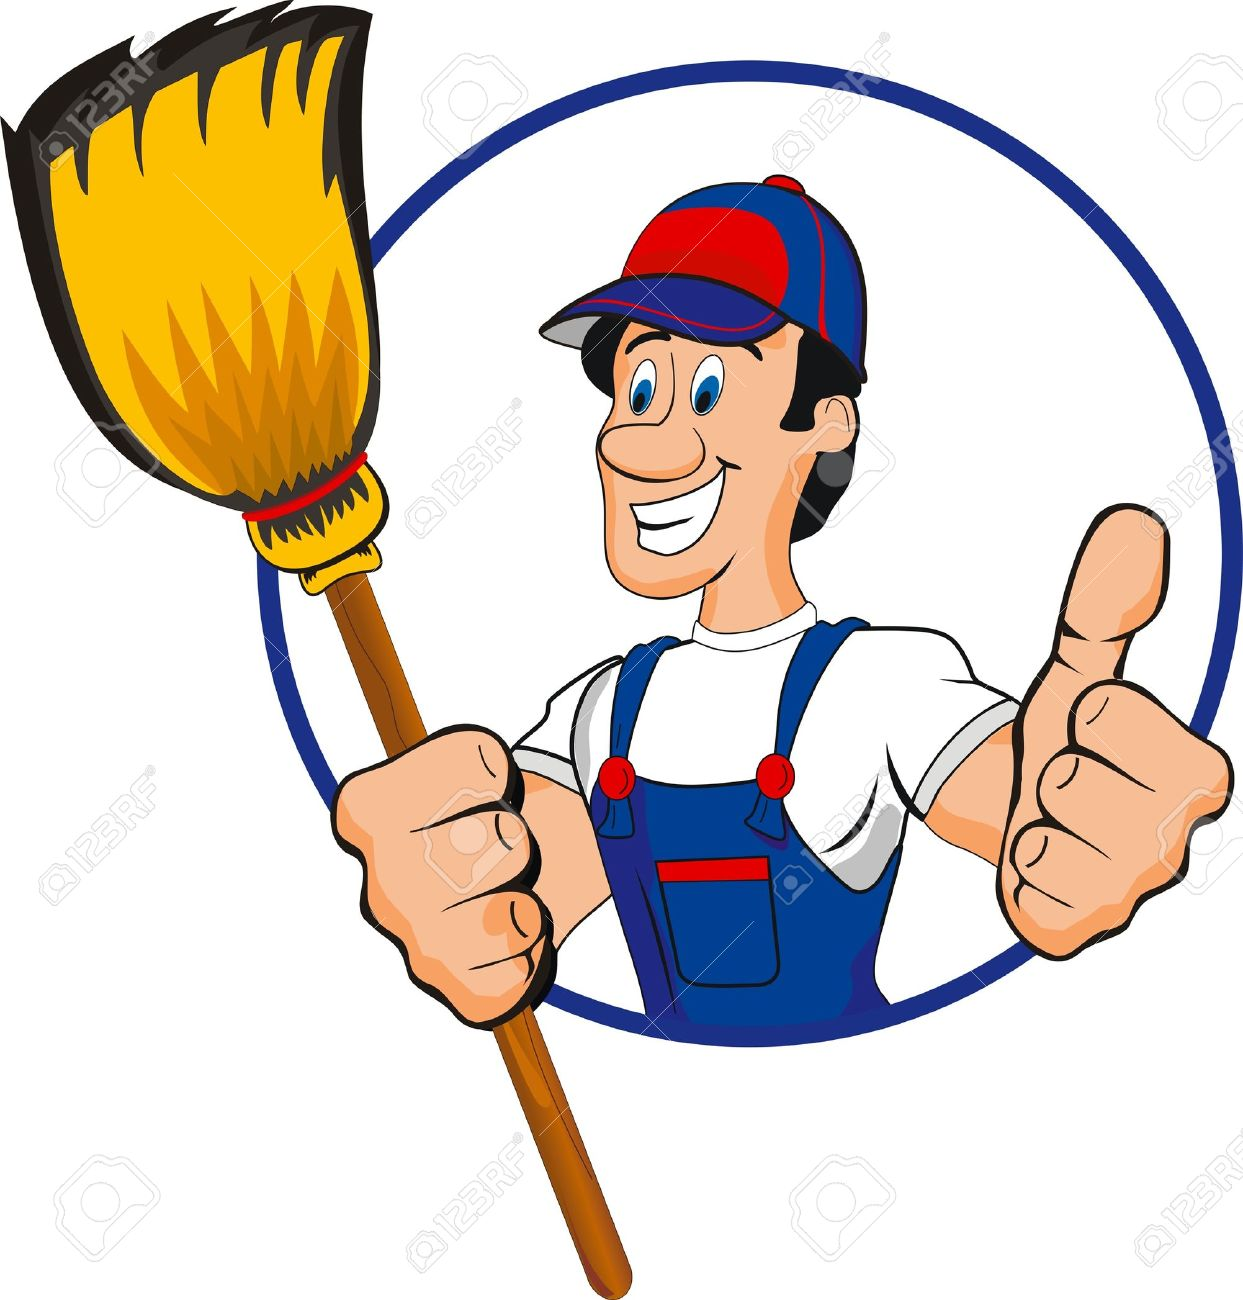 6 426 cleaning service stock illustrations cliparts and royalty cleaning service professional cleaner illustration